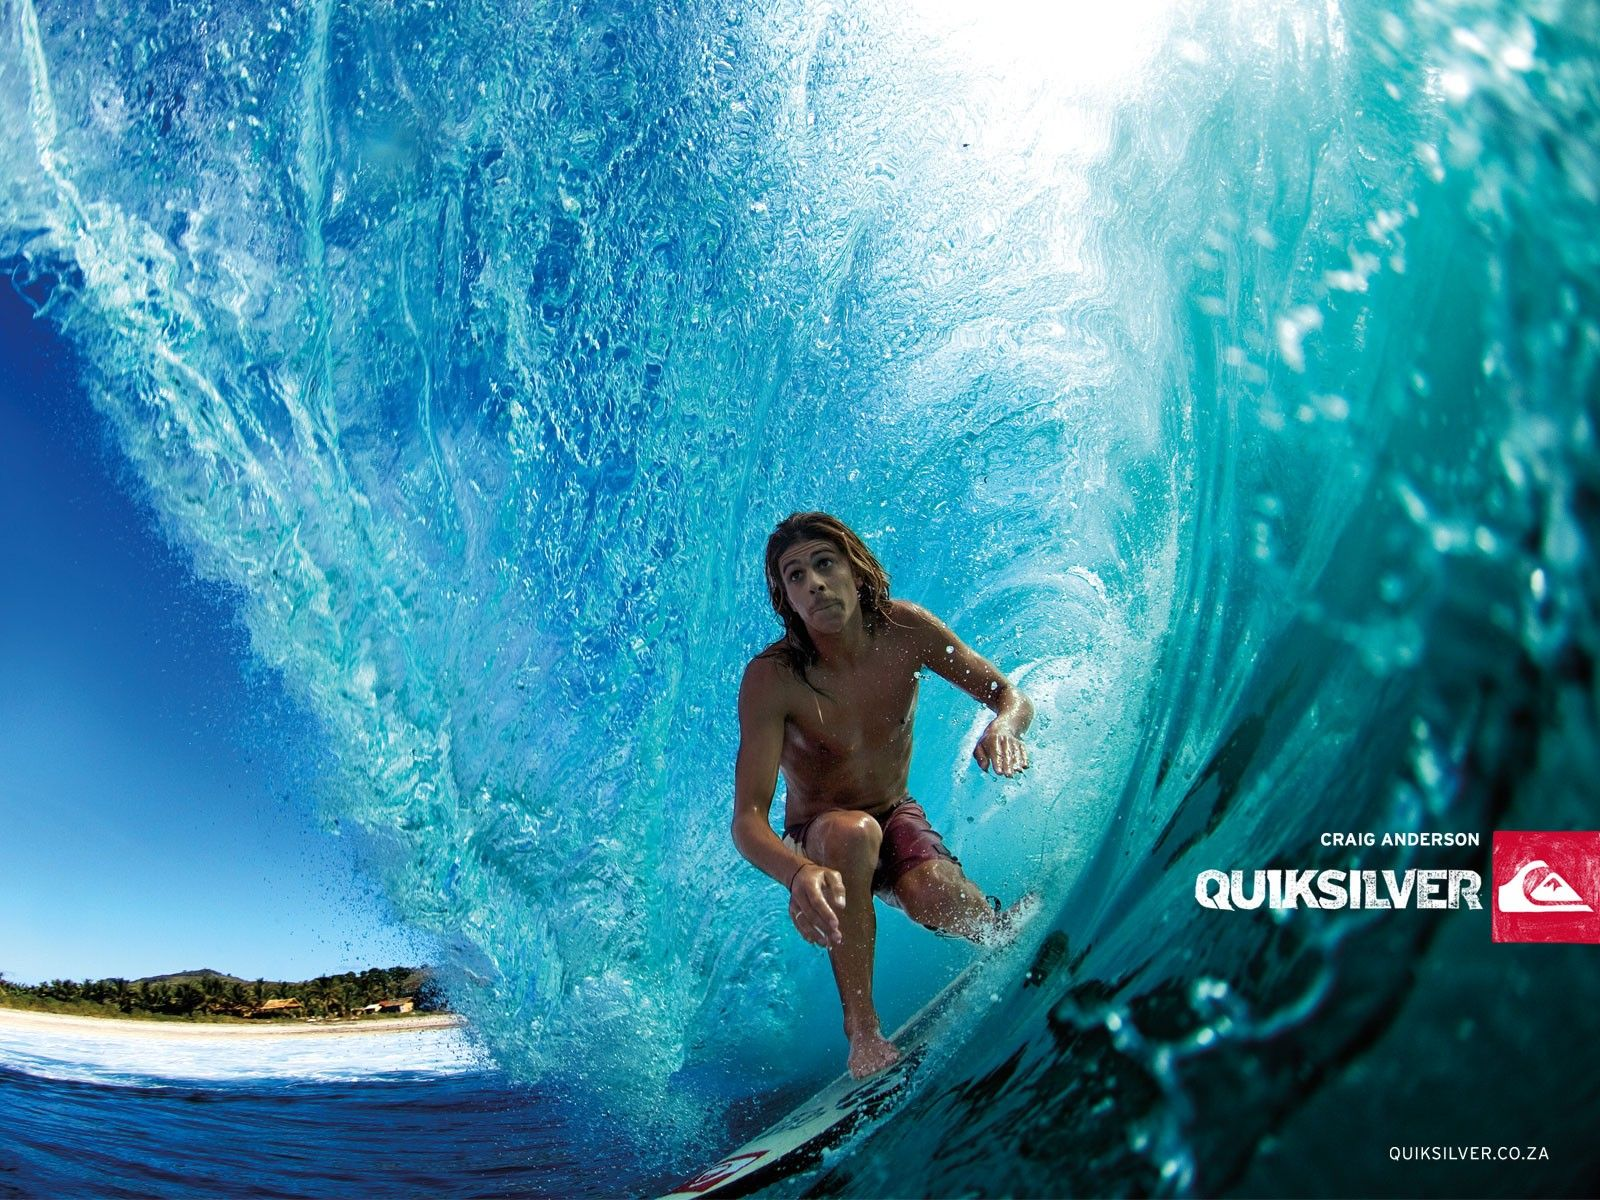 Waves Surfing Quiksilver